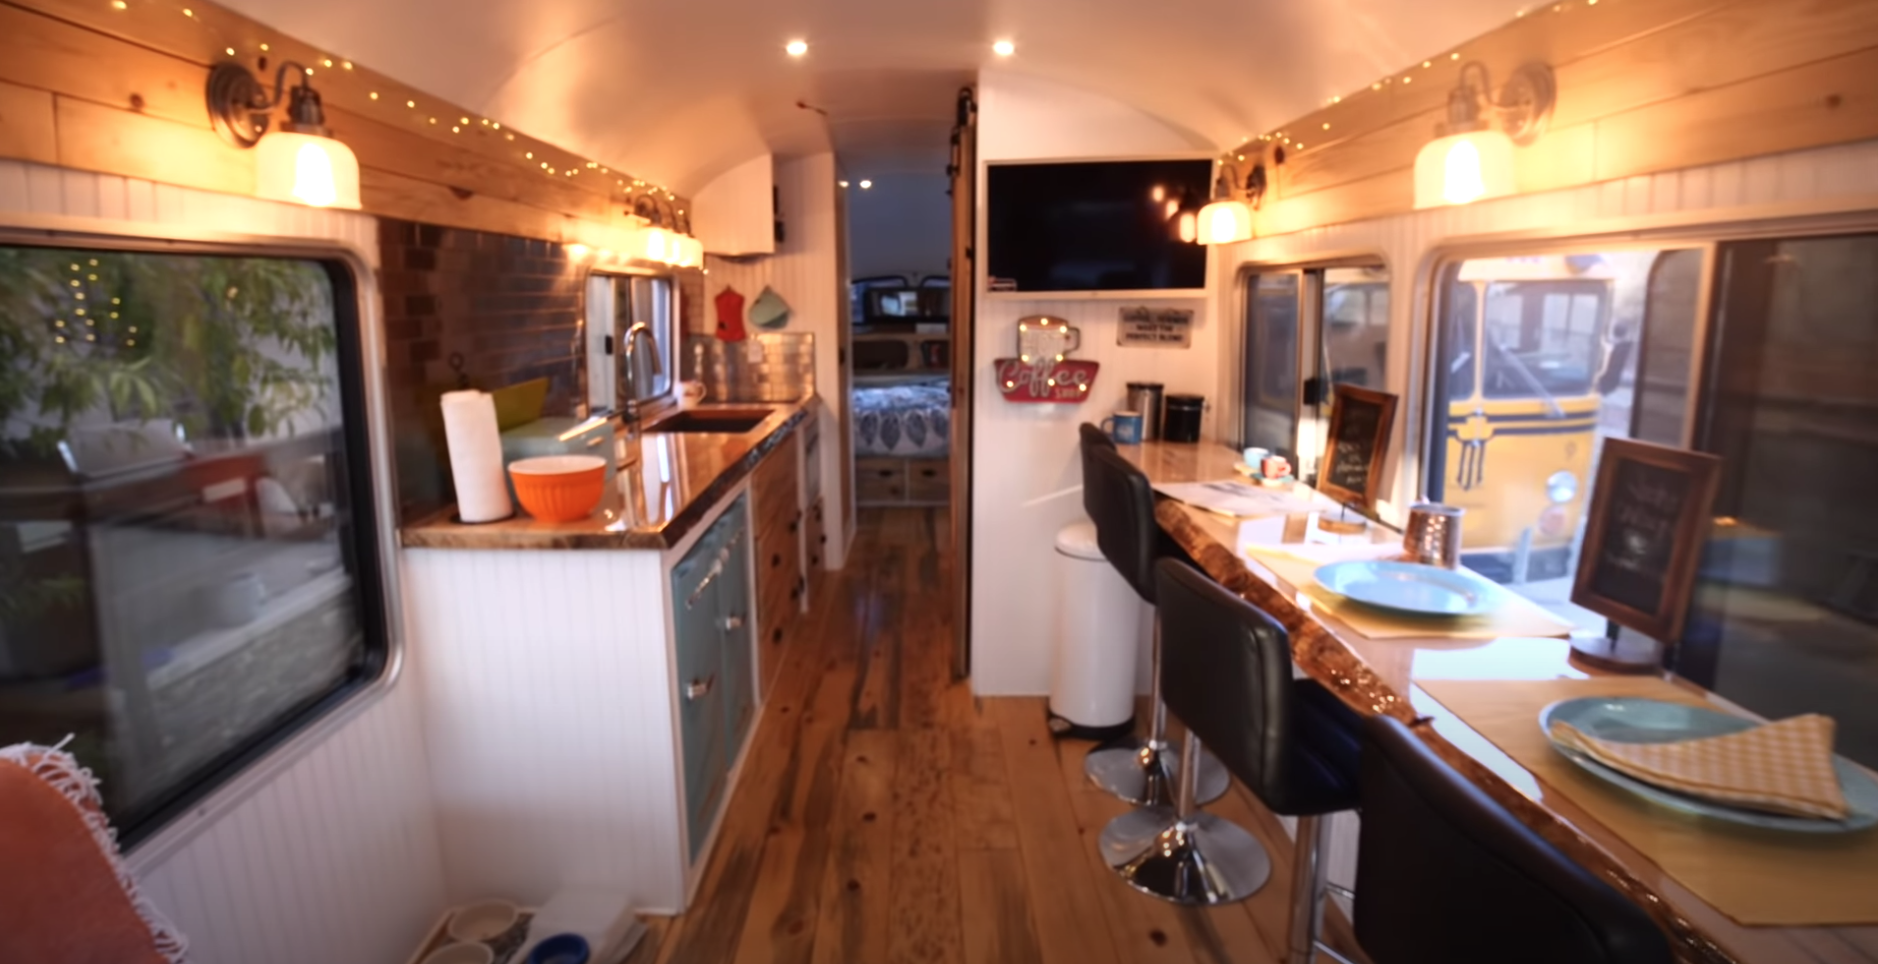 Inside the bus, there is plenty of seating to eat and a kitchen